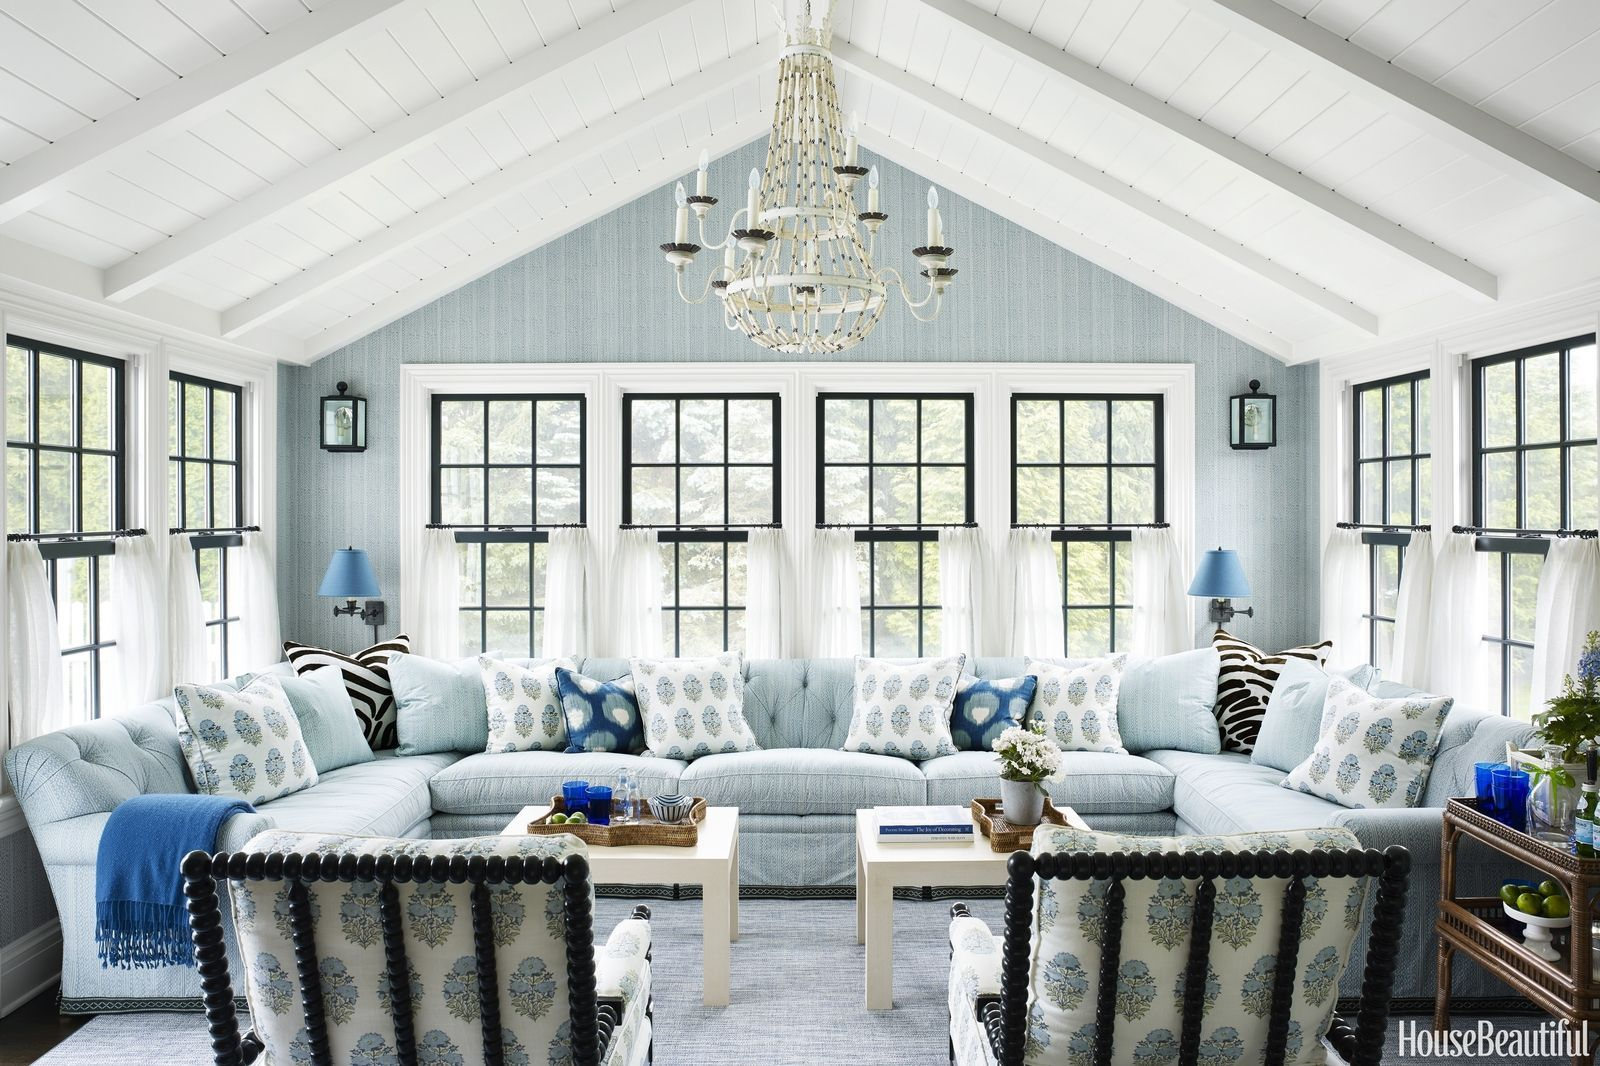 Architectural Details and Charming Florals Upgrade a New England ...